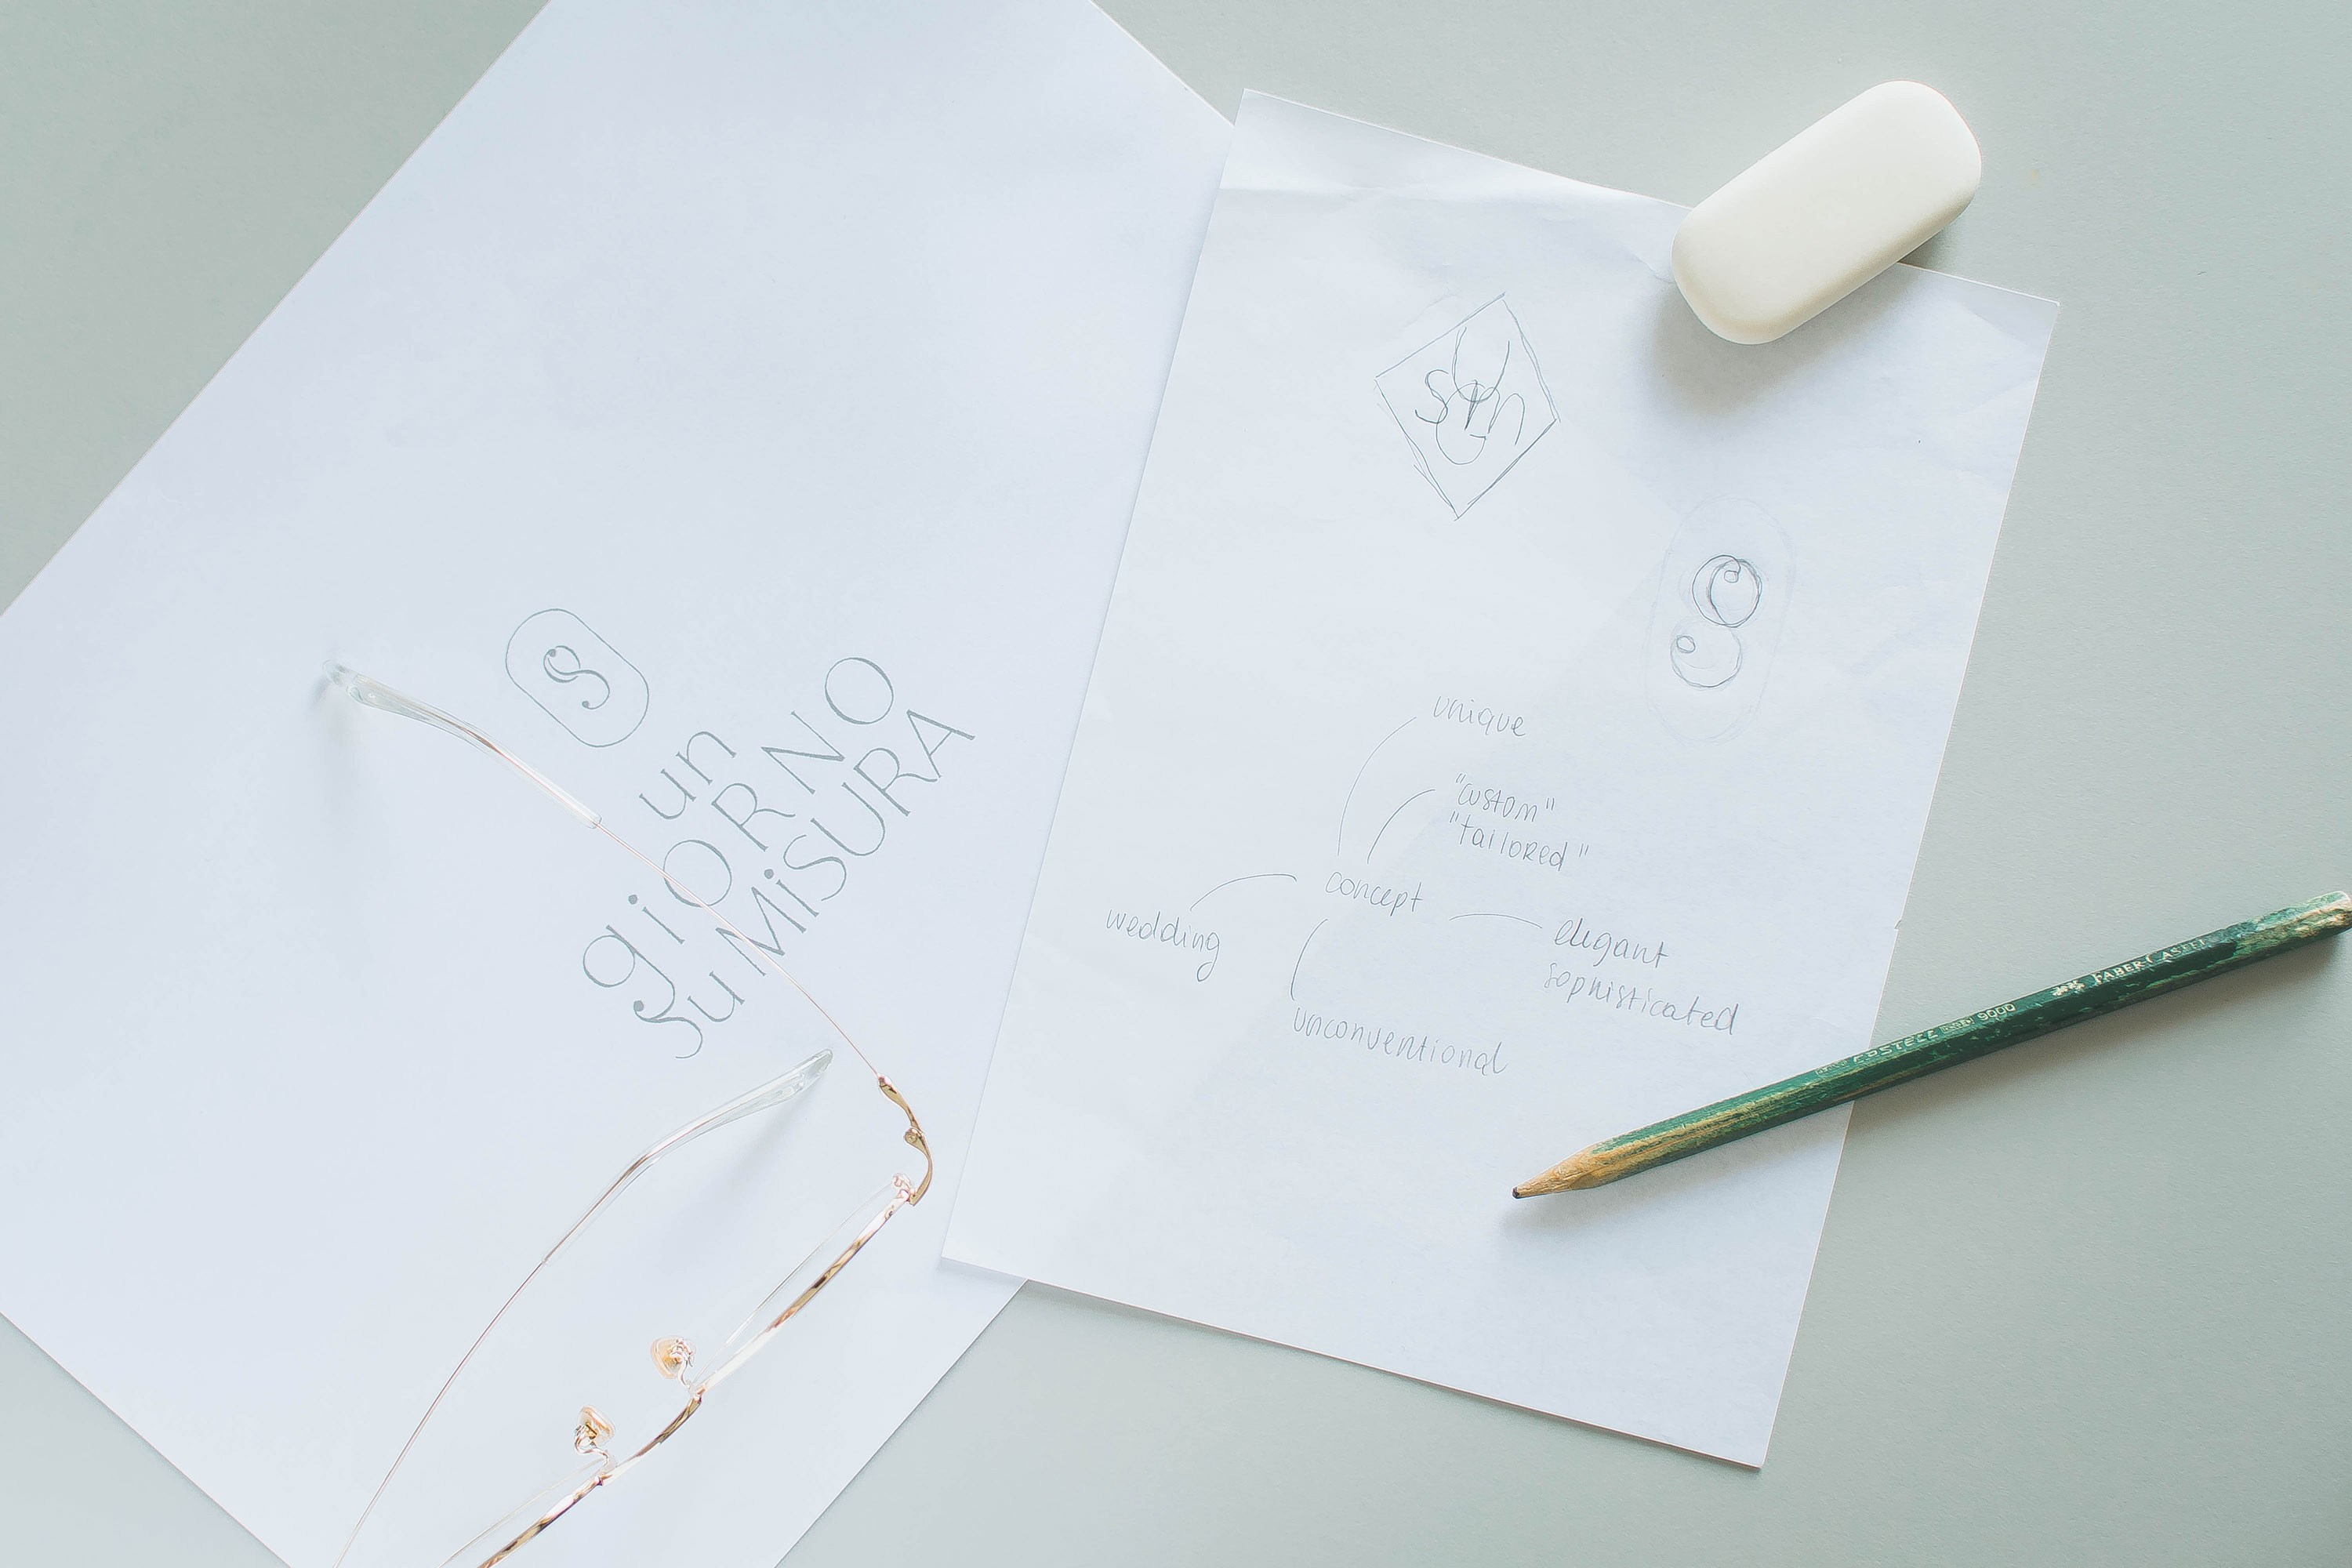 Miel Café Design Portfolio: Handmade Illustrations for Un Giorno Su Misura wedding planner